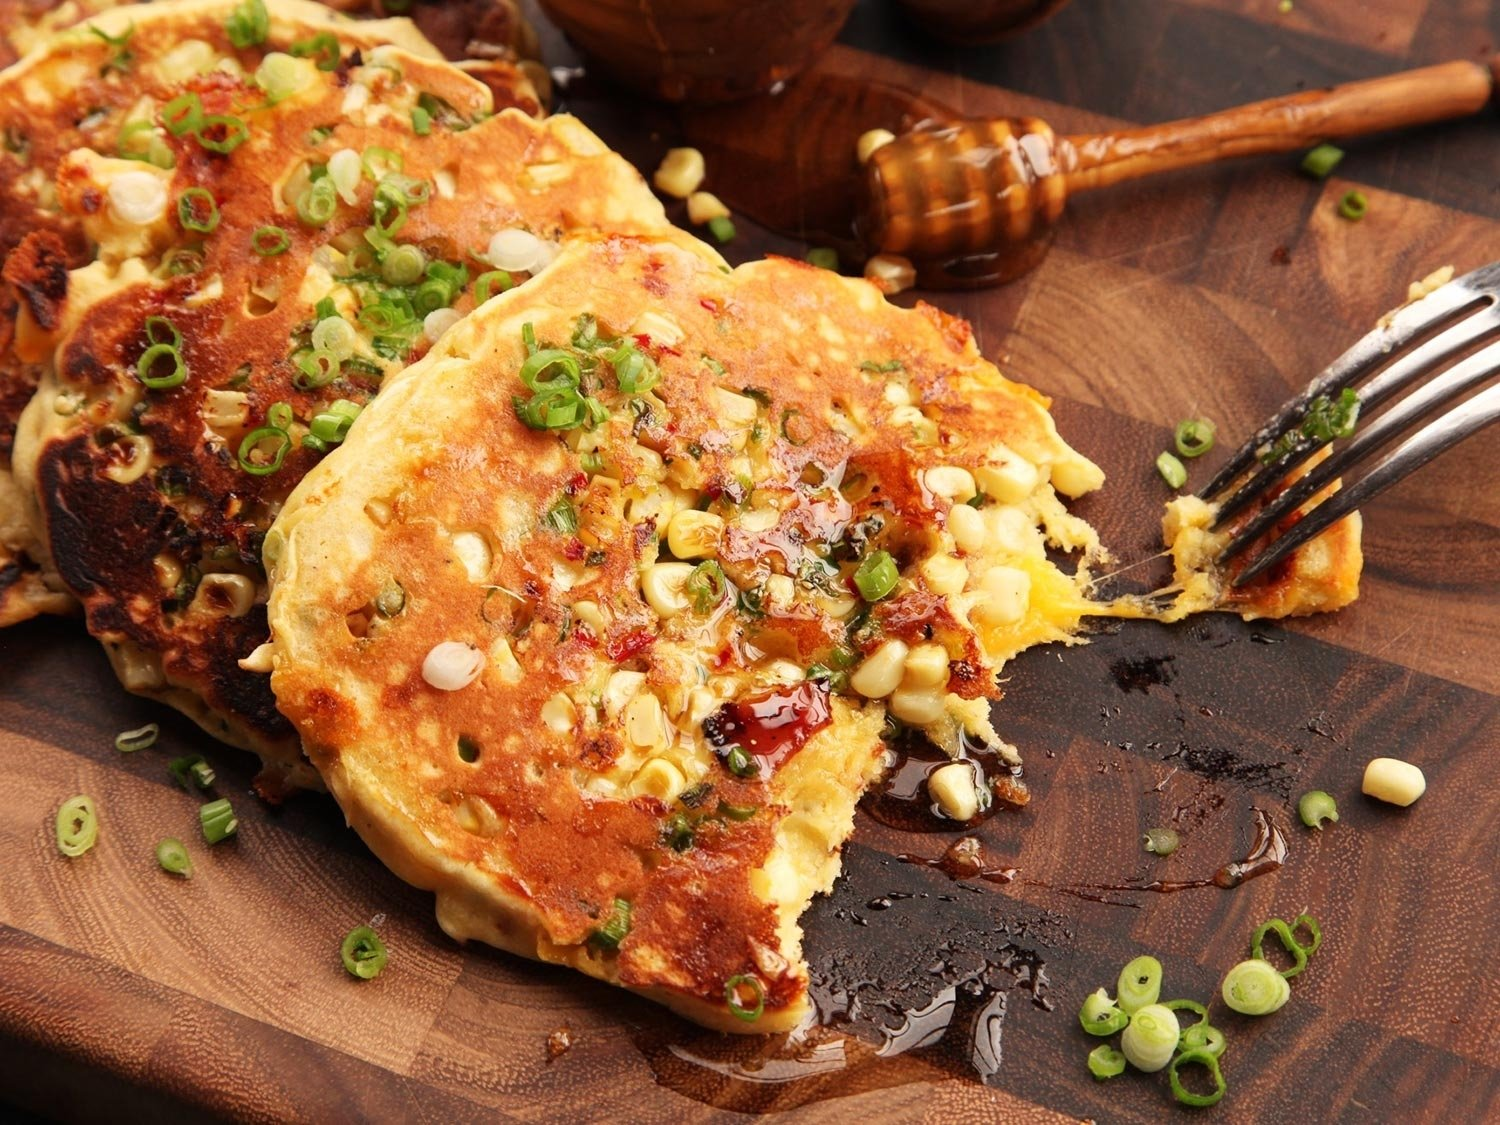 10 Stunning Breakfast Ideas For A Crowd 17 easy breakfasts to feed a crowd serious eats 11 2020